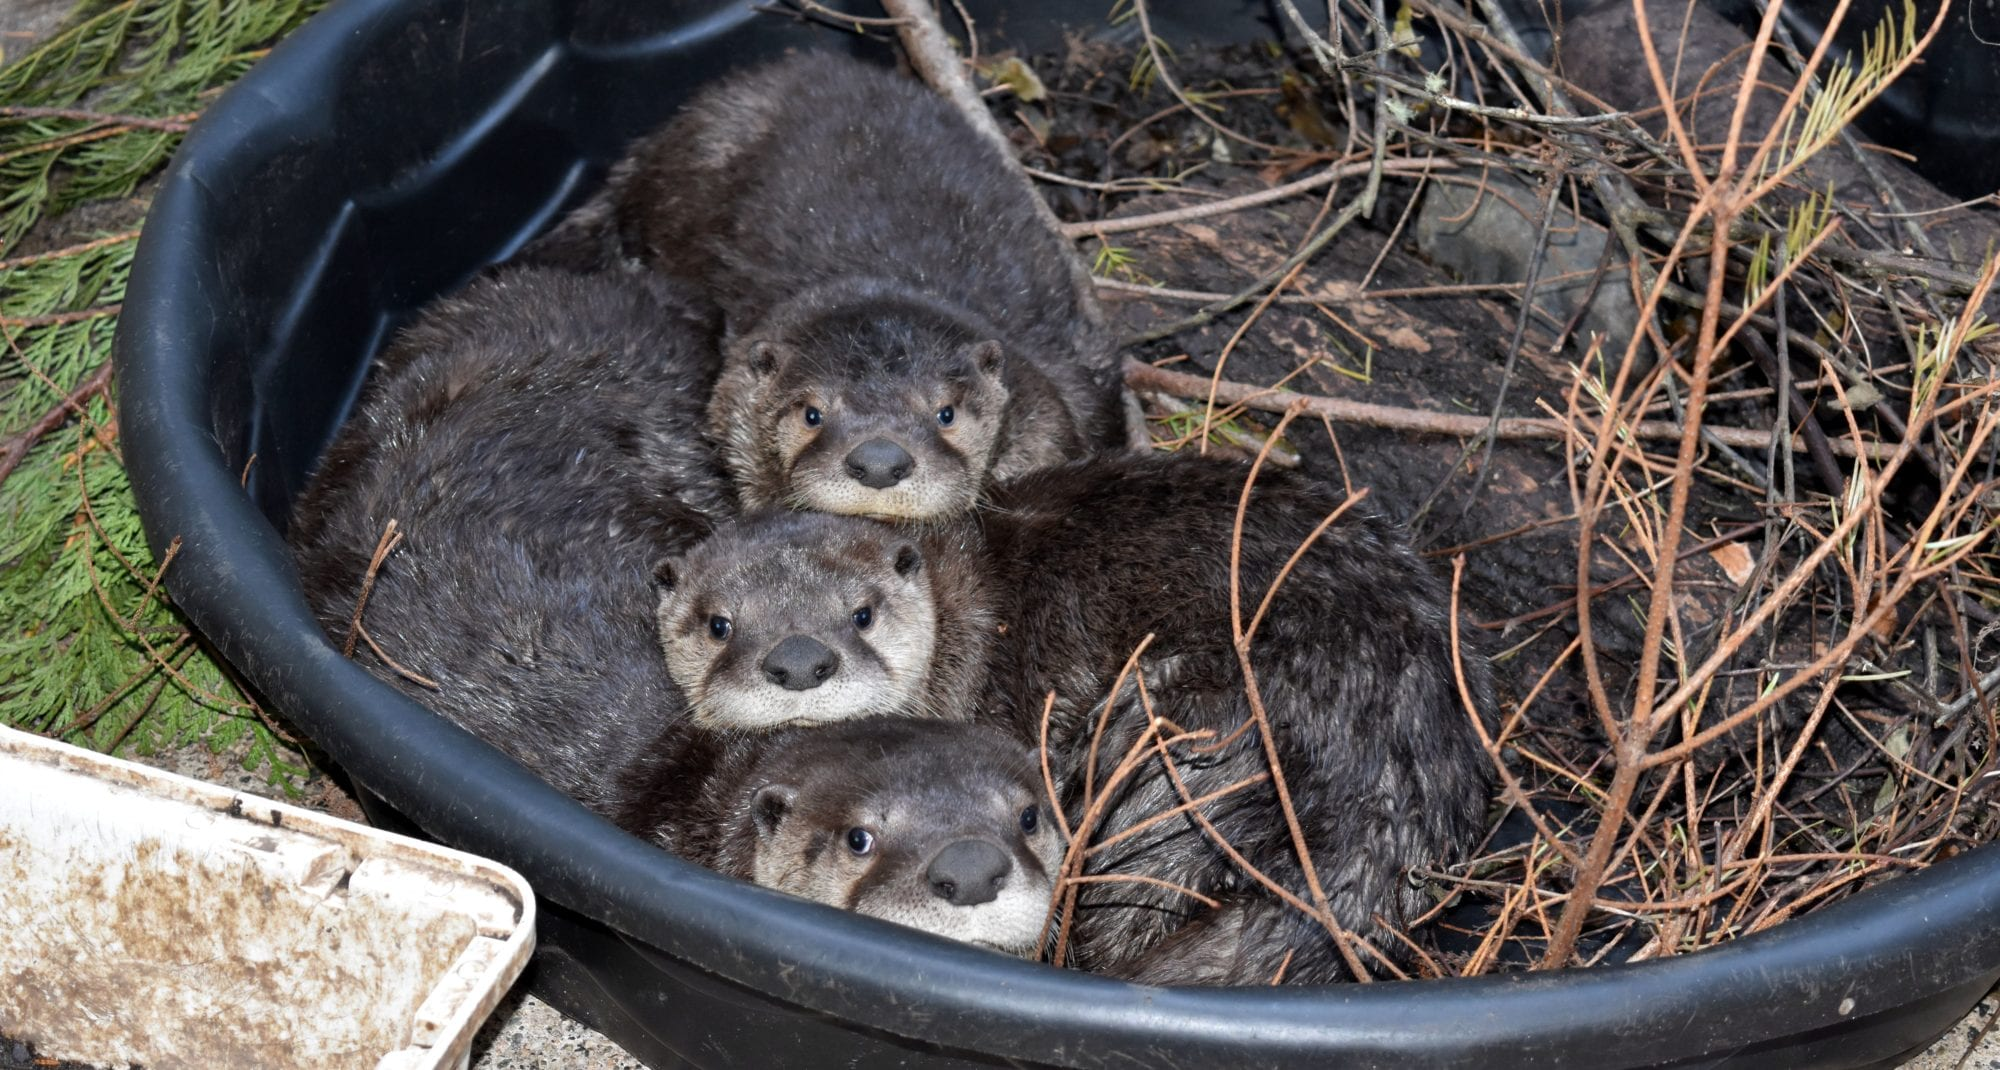 A Campaign Like No Otter Be There For Wild Release How To Build Nocturnal Animals Whisker Lady Ladysmith Was Orphaned After Her Mom Chased By Dog And Dropped While Cowby Cowichan Bay Found Covered With More Than One